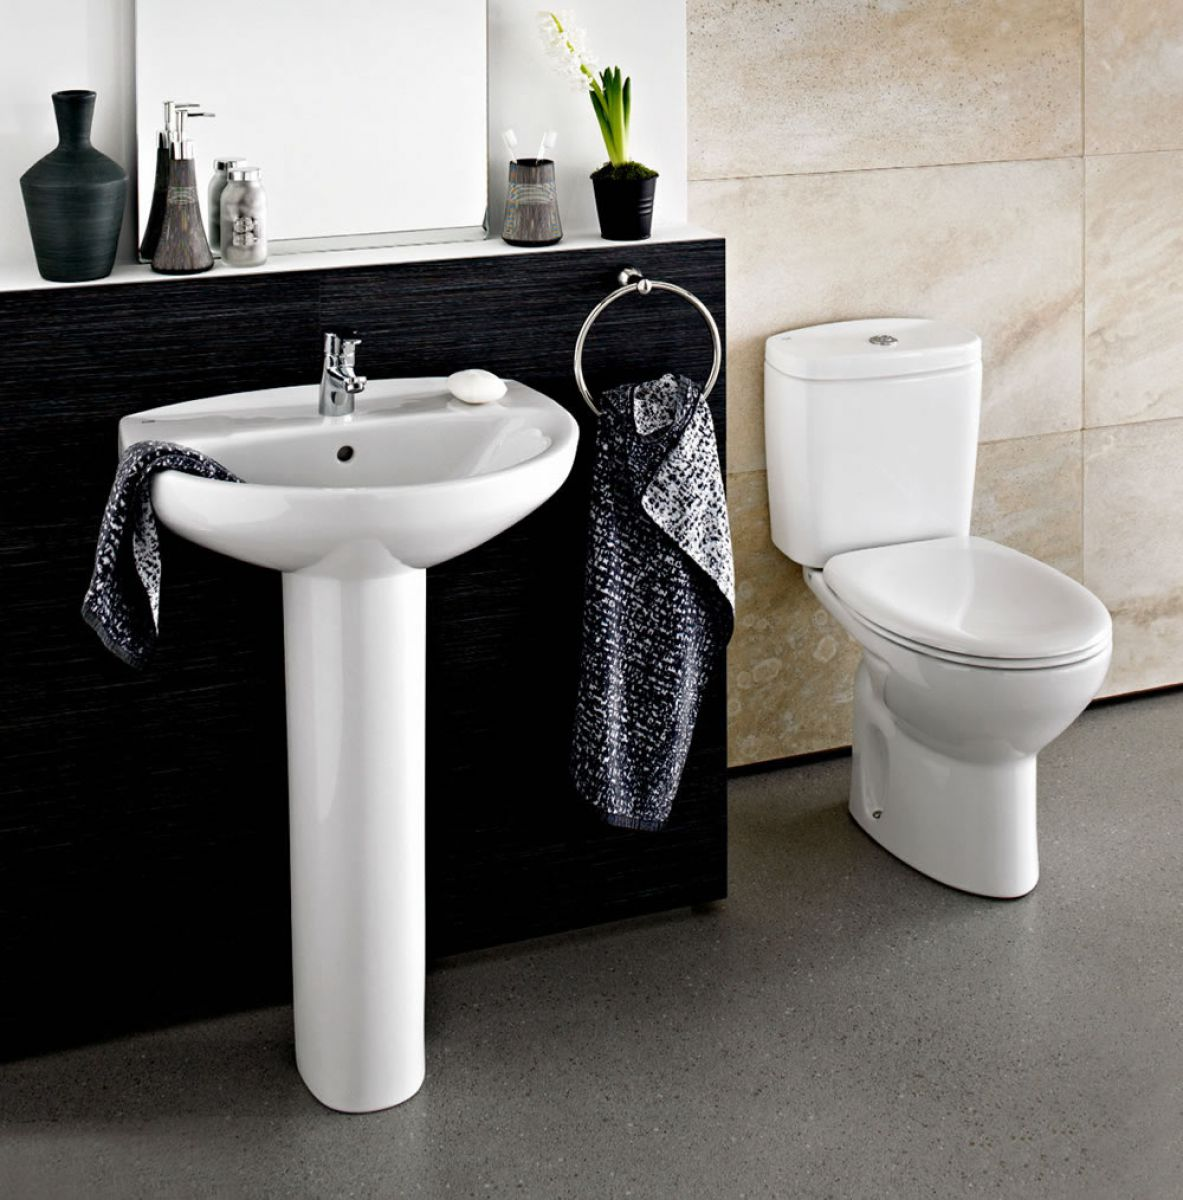 Roca Bathroom Accessories Roca Laura Eco Bathroom In A Box Uk Bathrooms